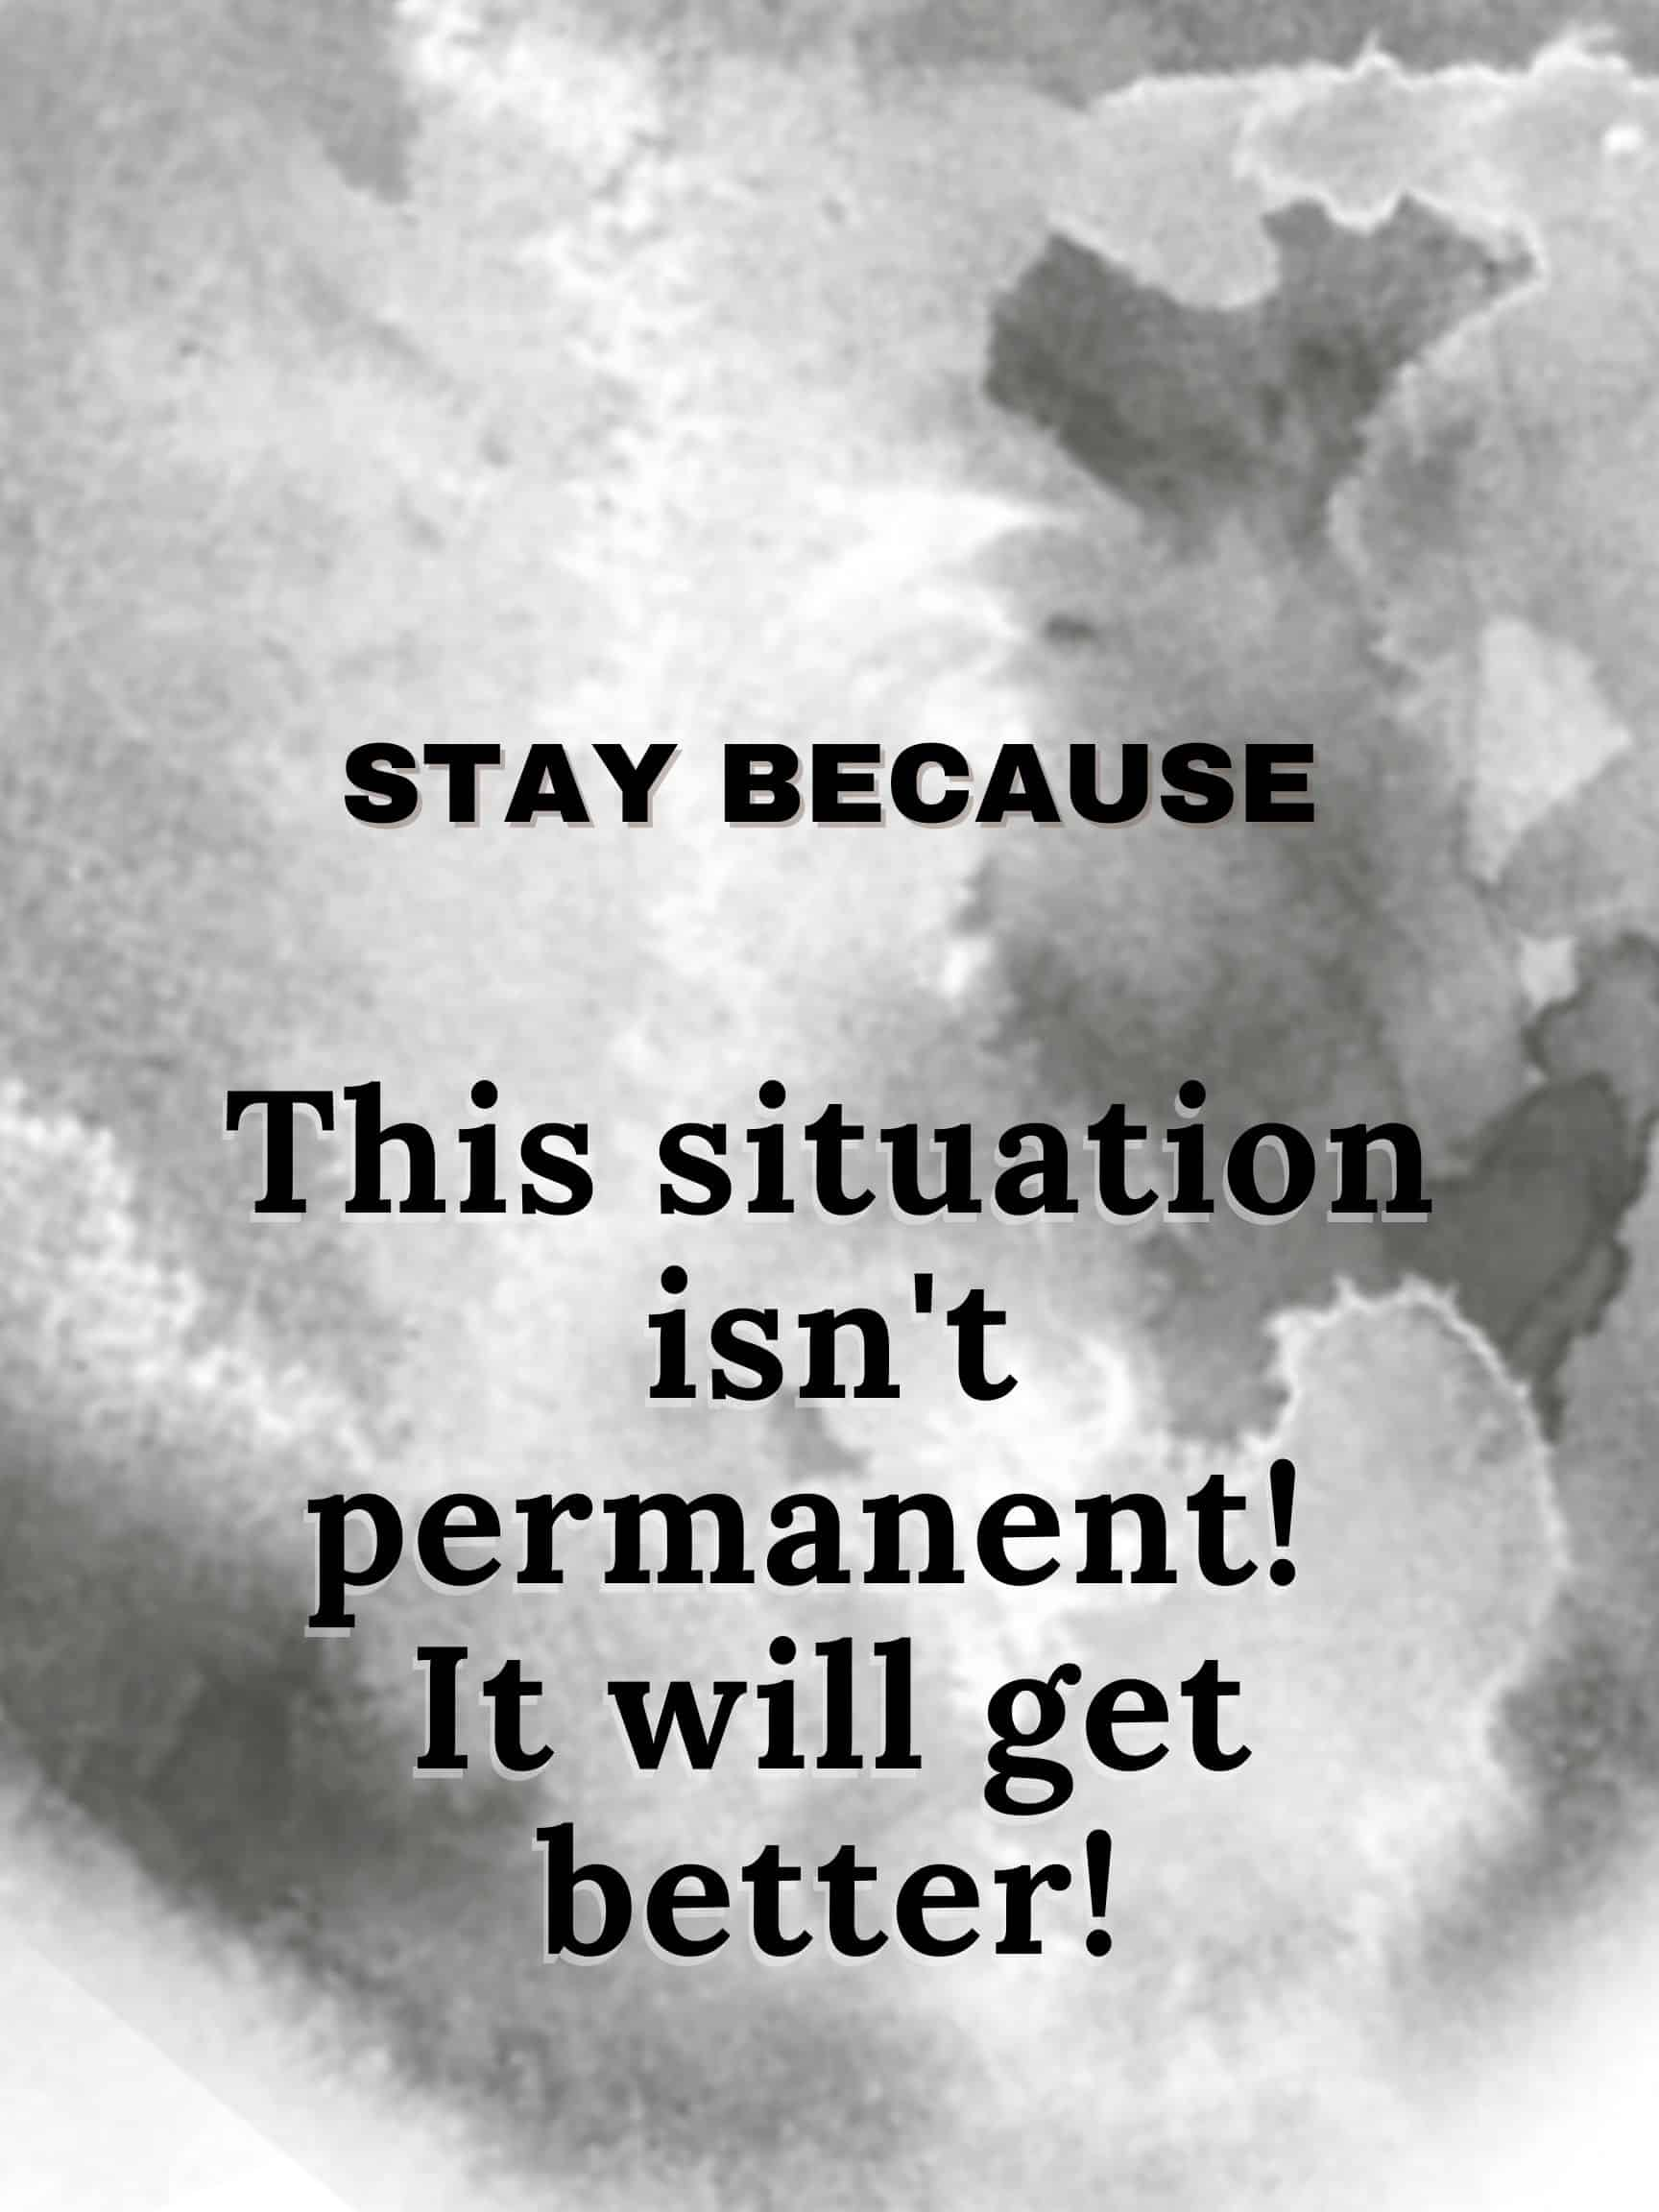 Stay because this situation isn't permanent. It will get better! #StayBecause